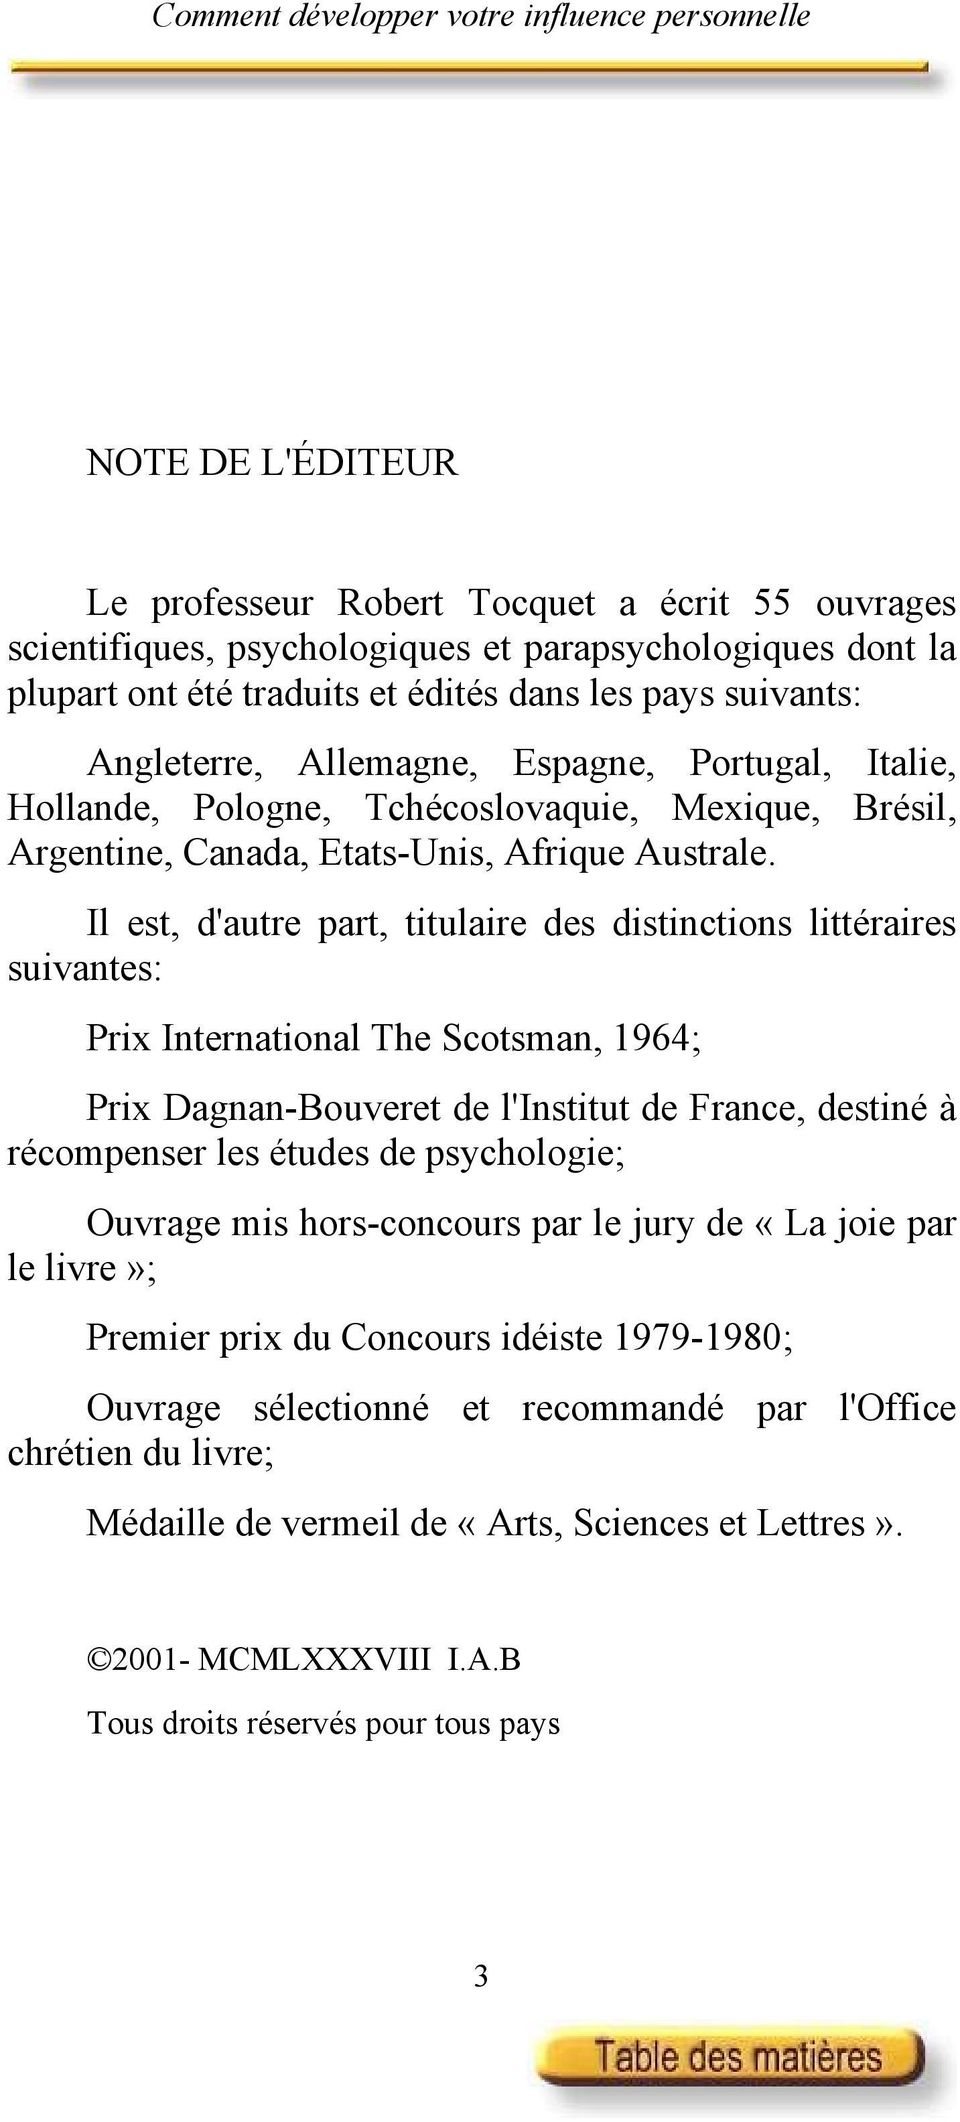 Il est, d'autre part, titulaire des distinctions littéraires suivantes: Prix International The Scotsman, 1964; Prix Dagnan-Bouveret de l'institut de France, destiné à récompenser les études de